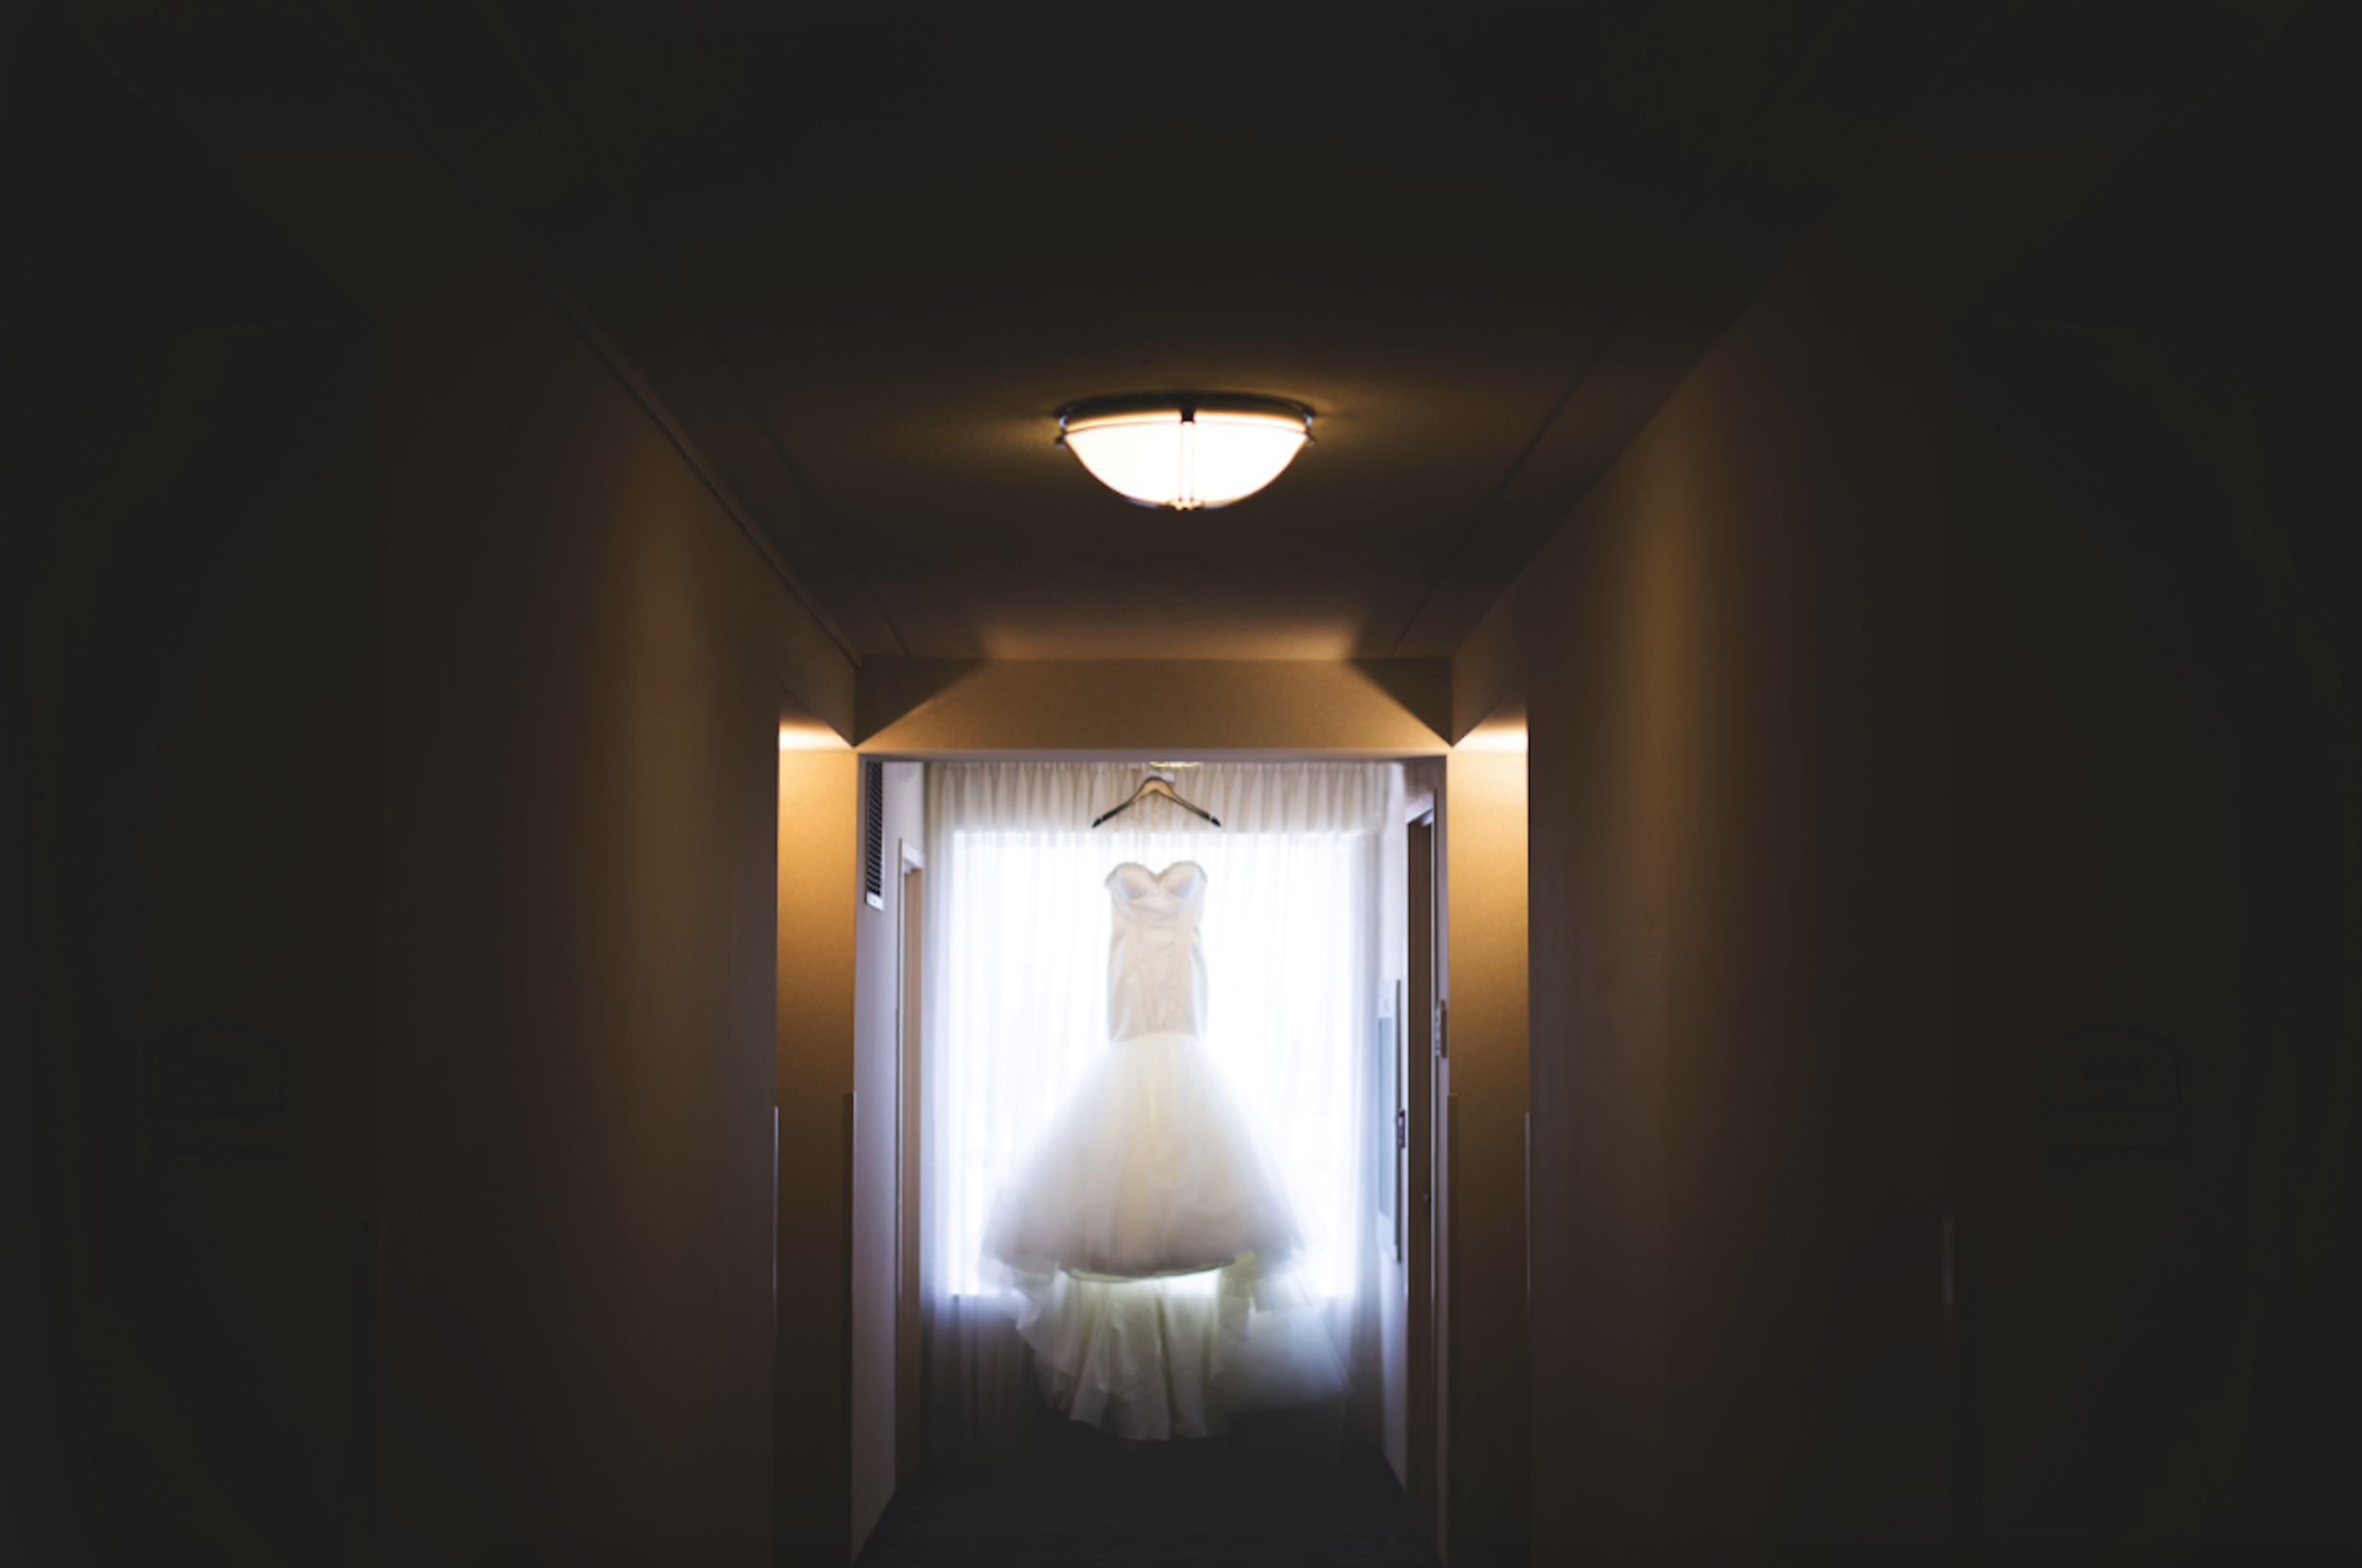 Wedding-Burlington-Convention-Center-Burlington-Oakville-Toronto-Hamilton-Niagara-Wedding-Photographer-Photography-Moments-by-Lauren-Photo-Image-2.png